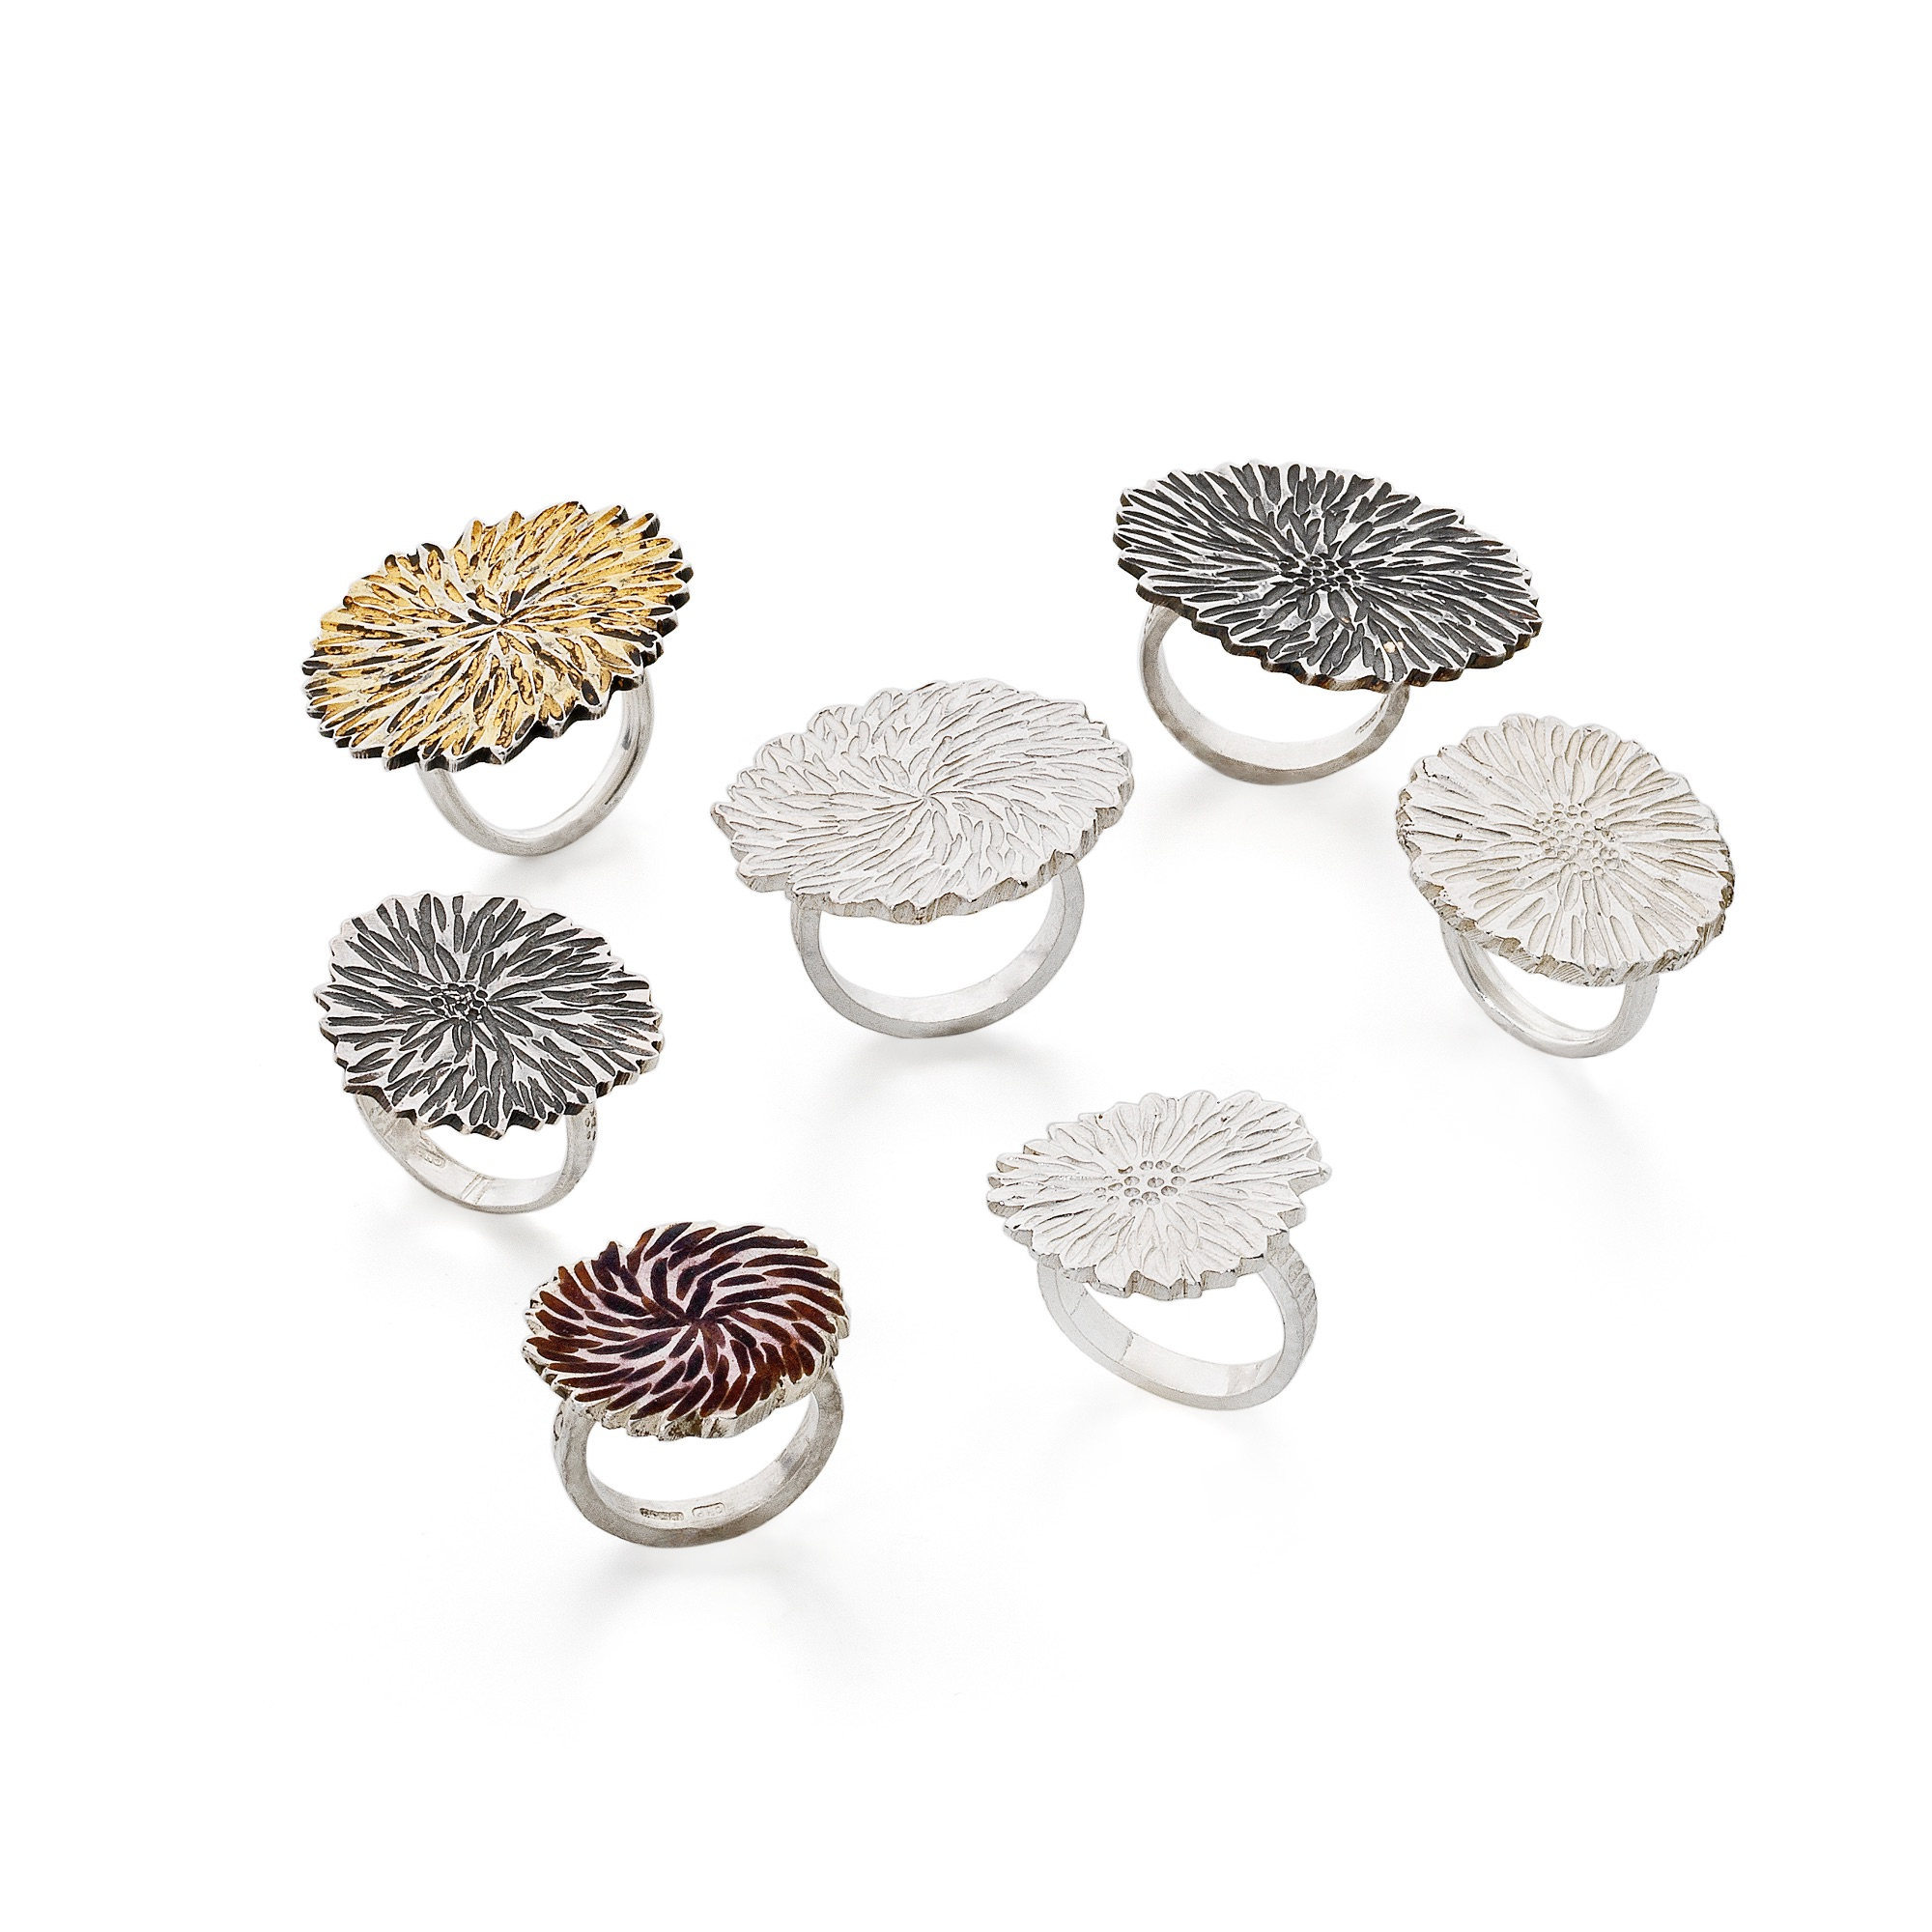 Cathy-Newell-Price-Dahlia-Rings